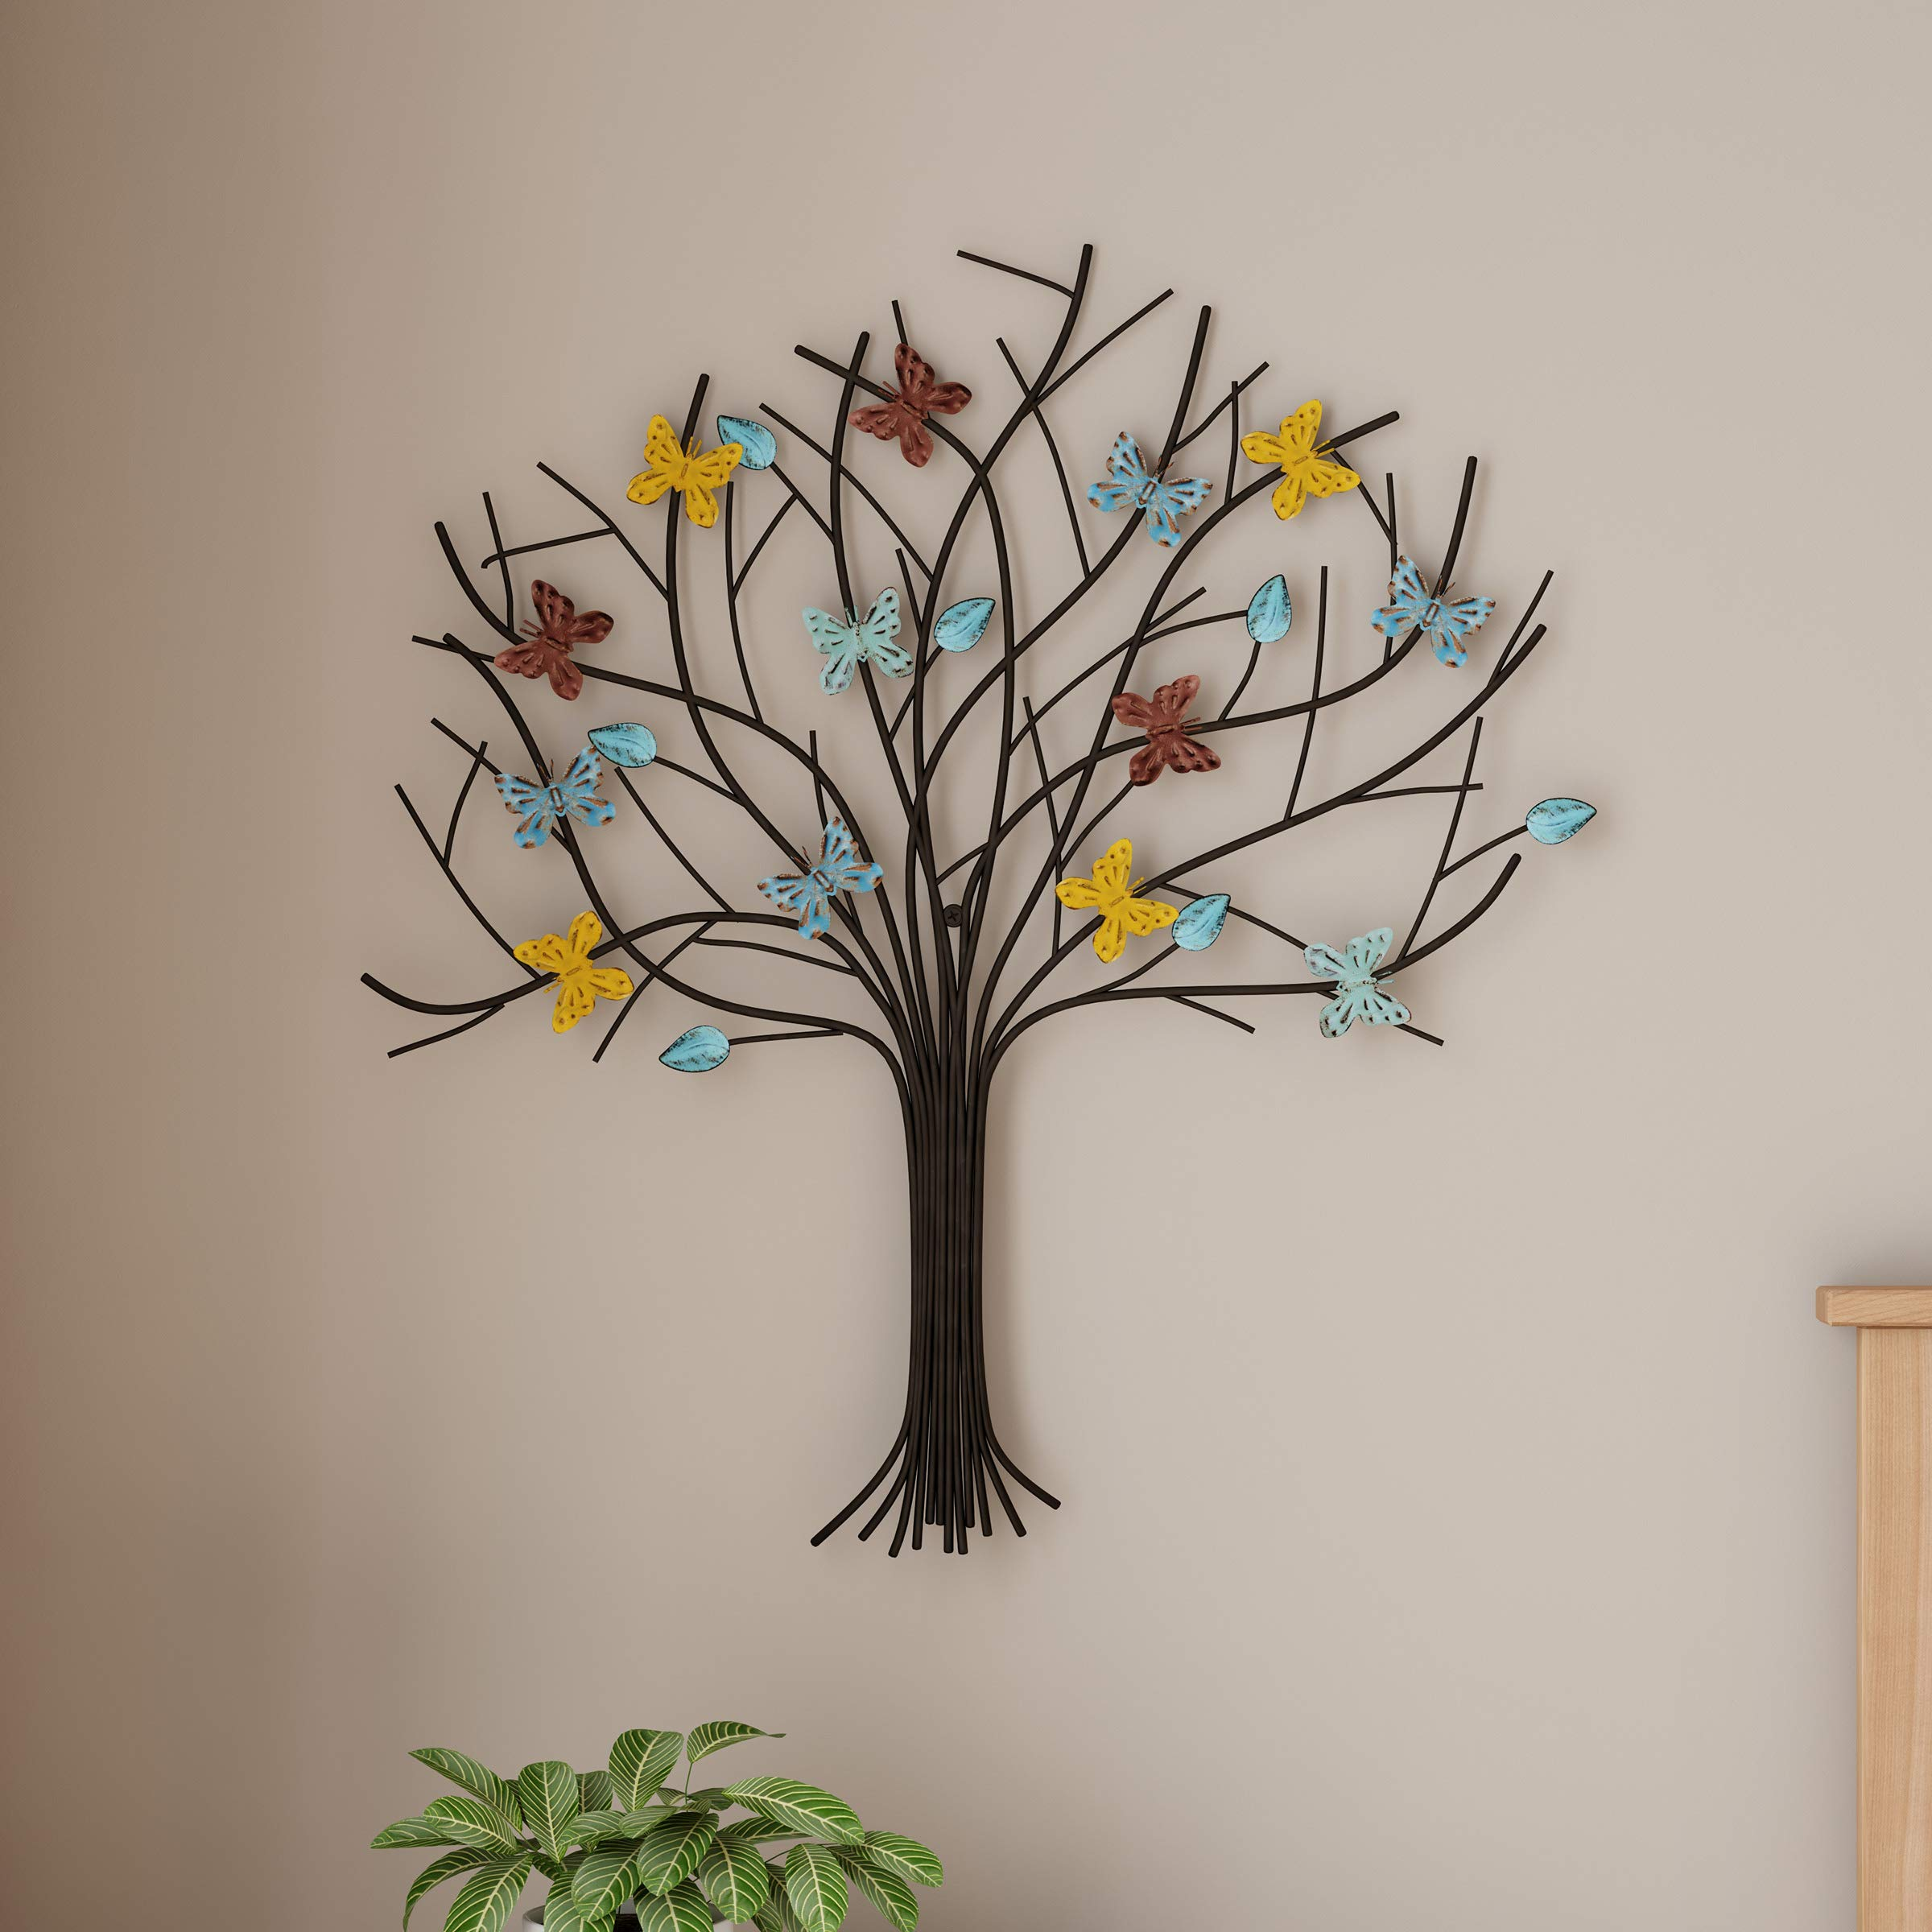 Lavish Home Tree of Life Metal Wall Art Hand Painted 3D Butterflies/Leaves for Modern Farmhouse Rustic Home or Office Decor by Lavish Home